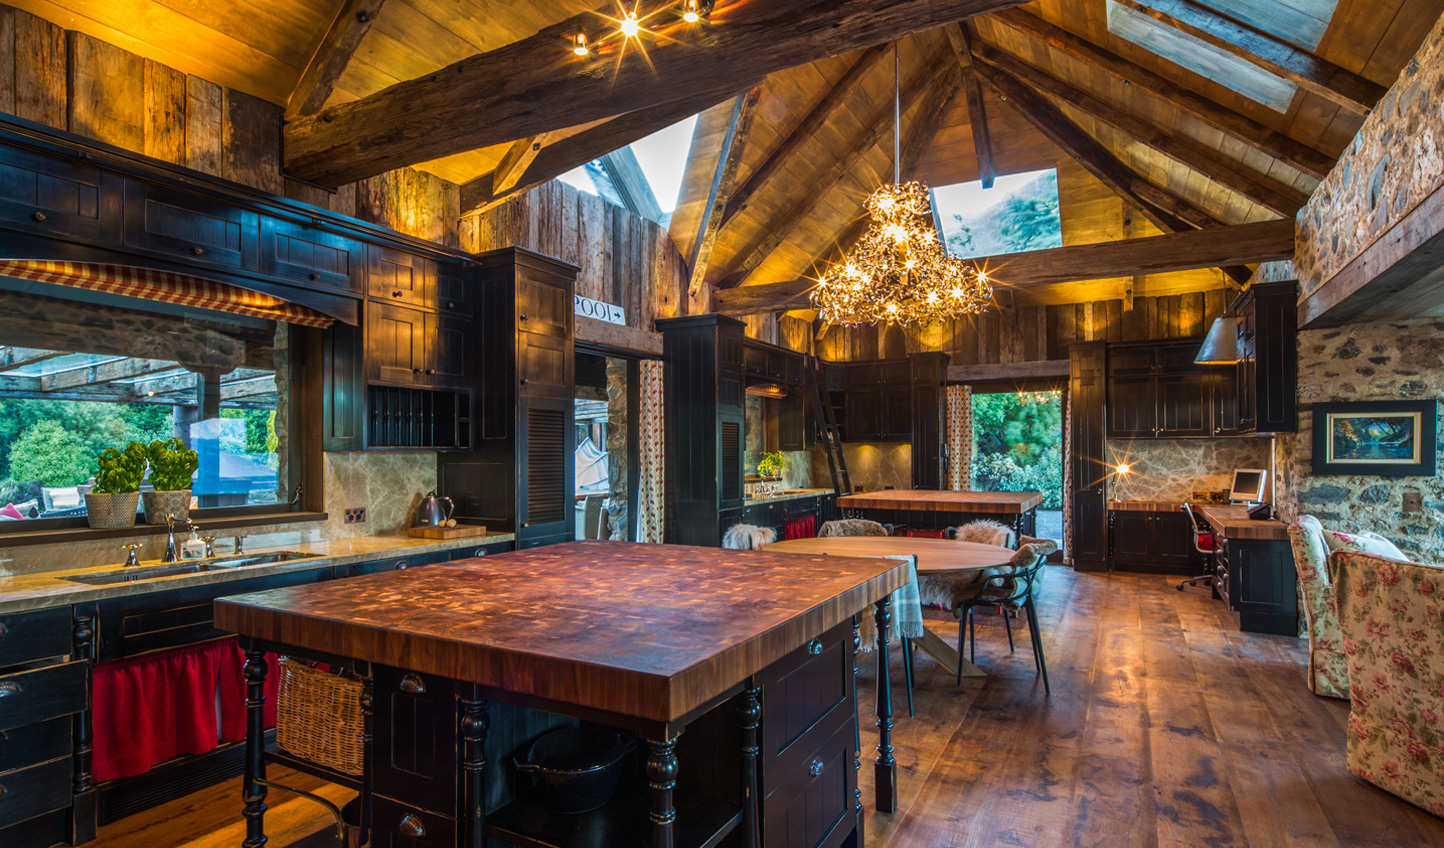 A rustic farmhouse kitchen perfect for cooking on cosy nights in